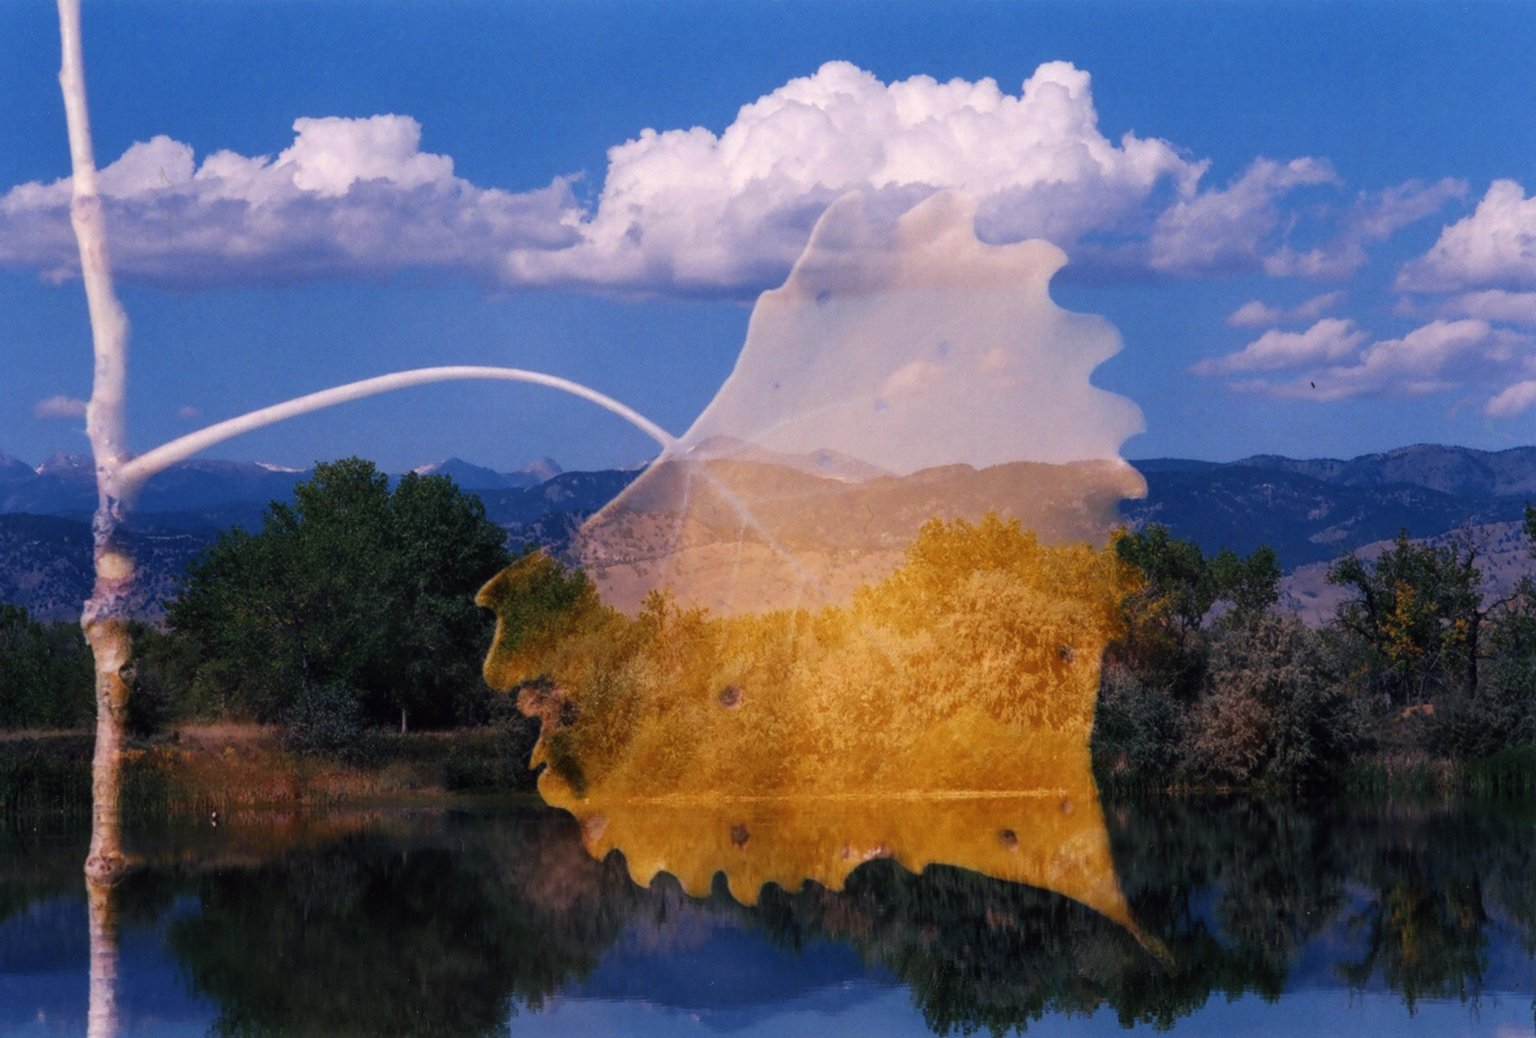 Double Exposure - Large leaf over scene with pond and mounatins